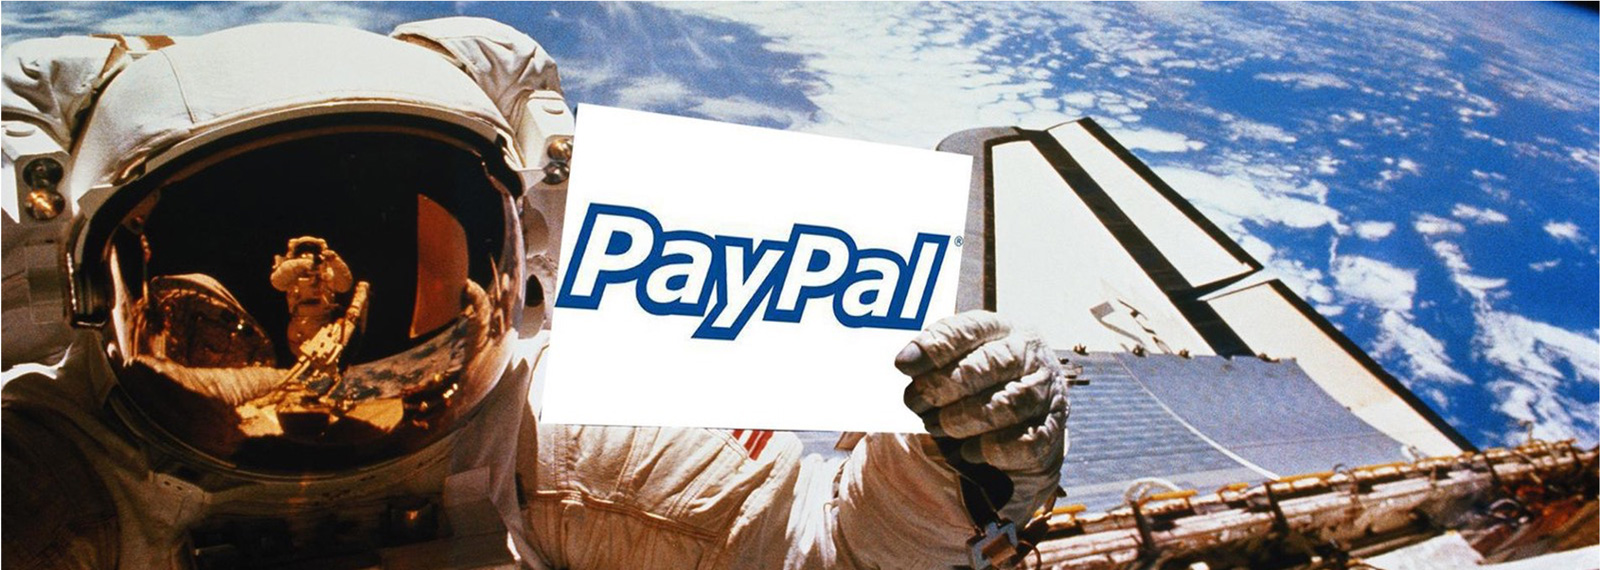 Paypal: Global communications strategy